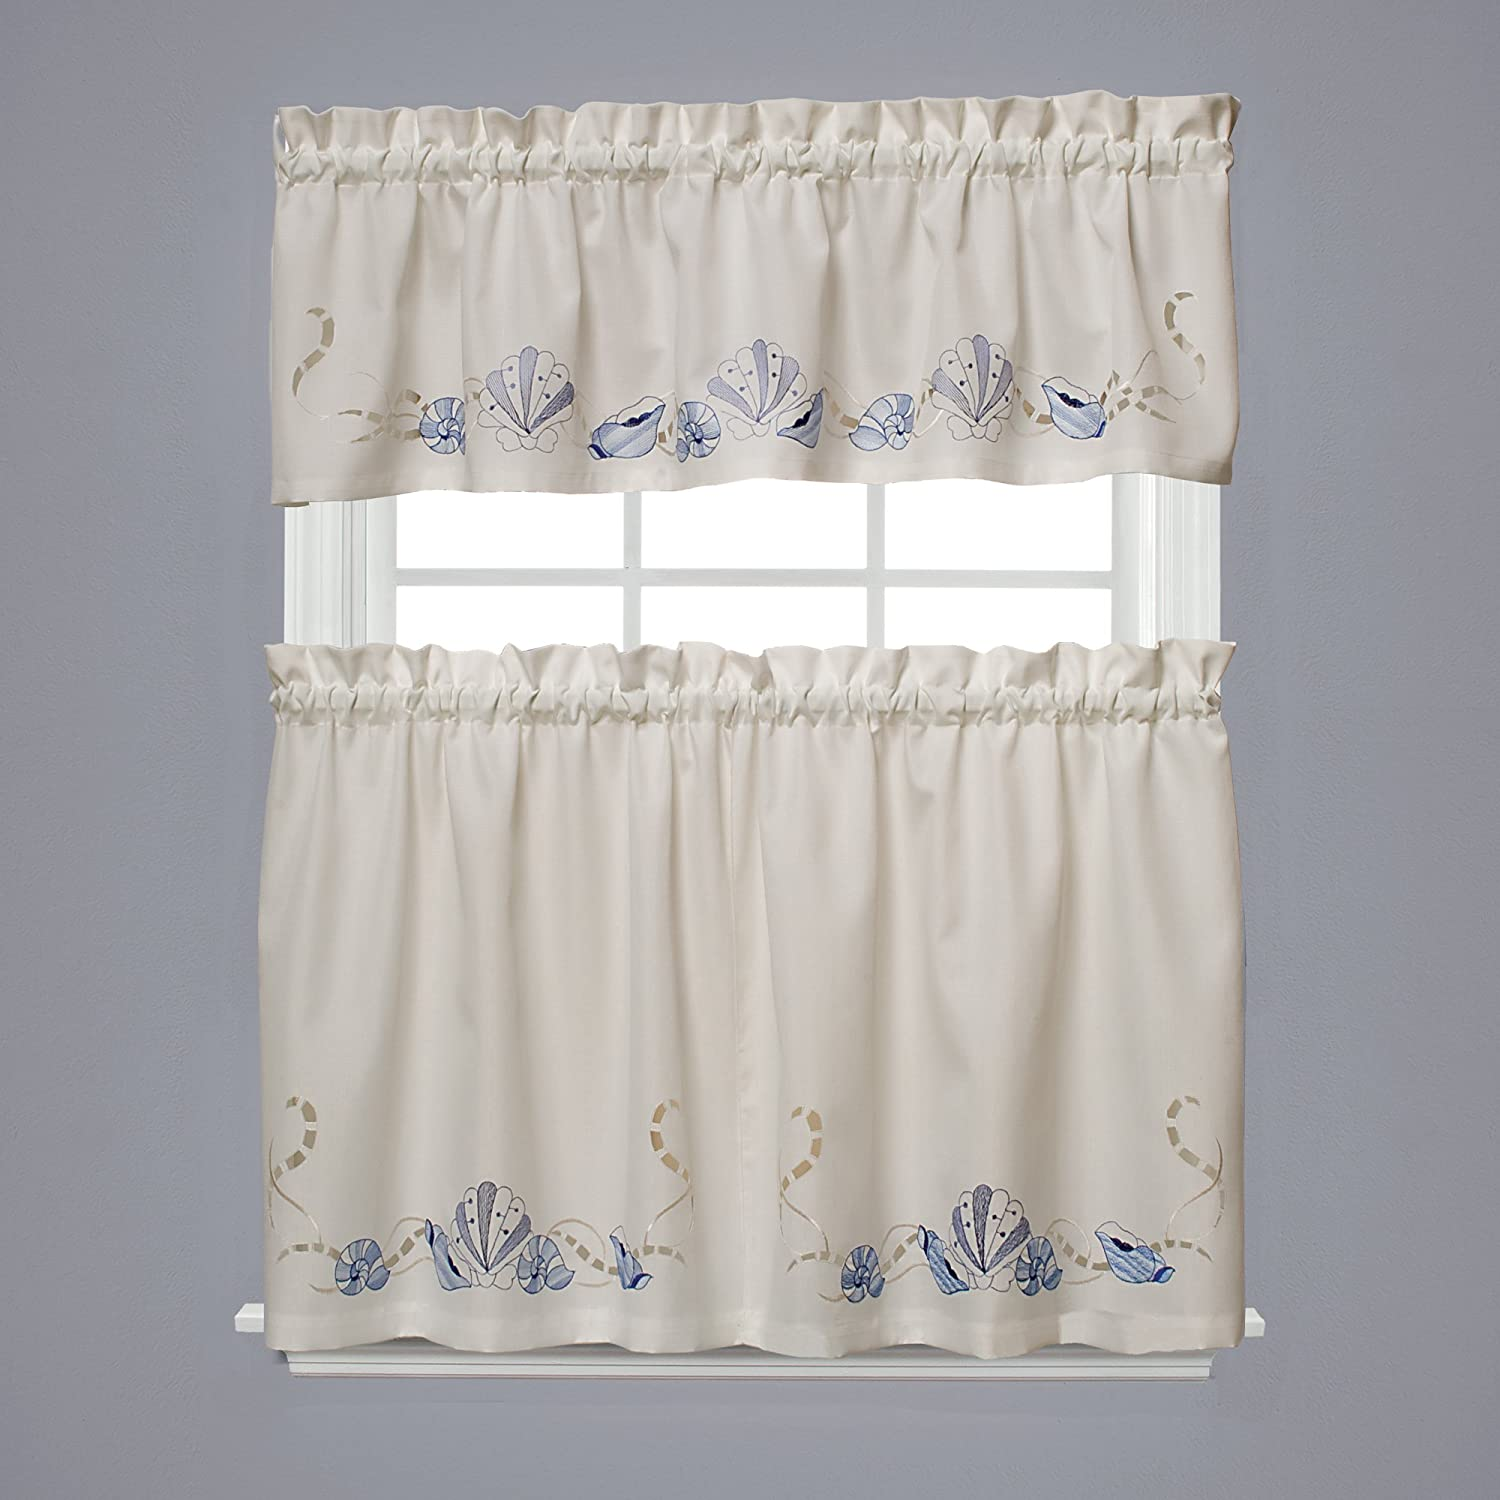 valance phenomenal curtains ideas curtain important the seashore gratify full for windows stunning likable valances size beach beac coastal satiating style bathroom compelling blinds etsy kitchen alluring or ocean theme themed seaview nautical beautiful and window of